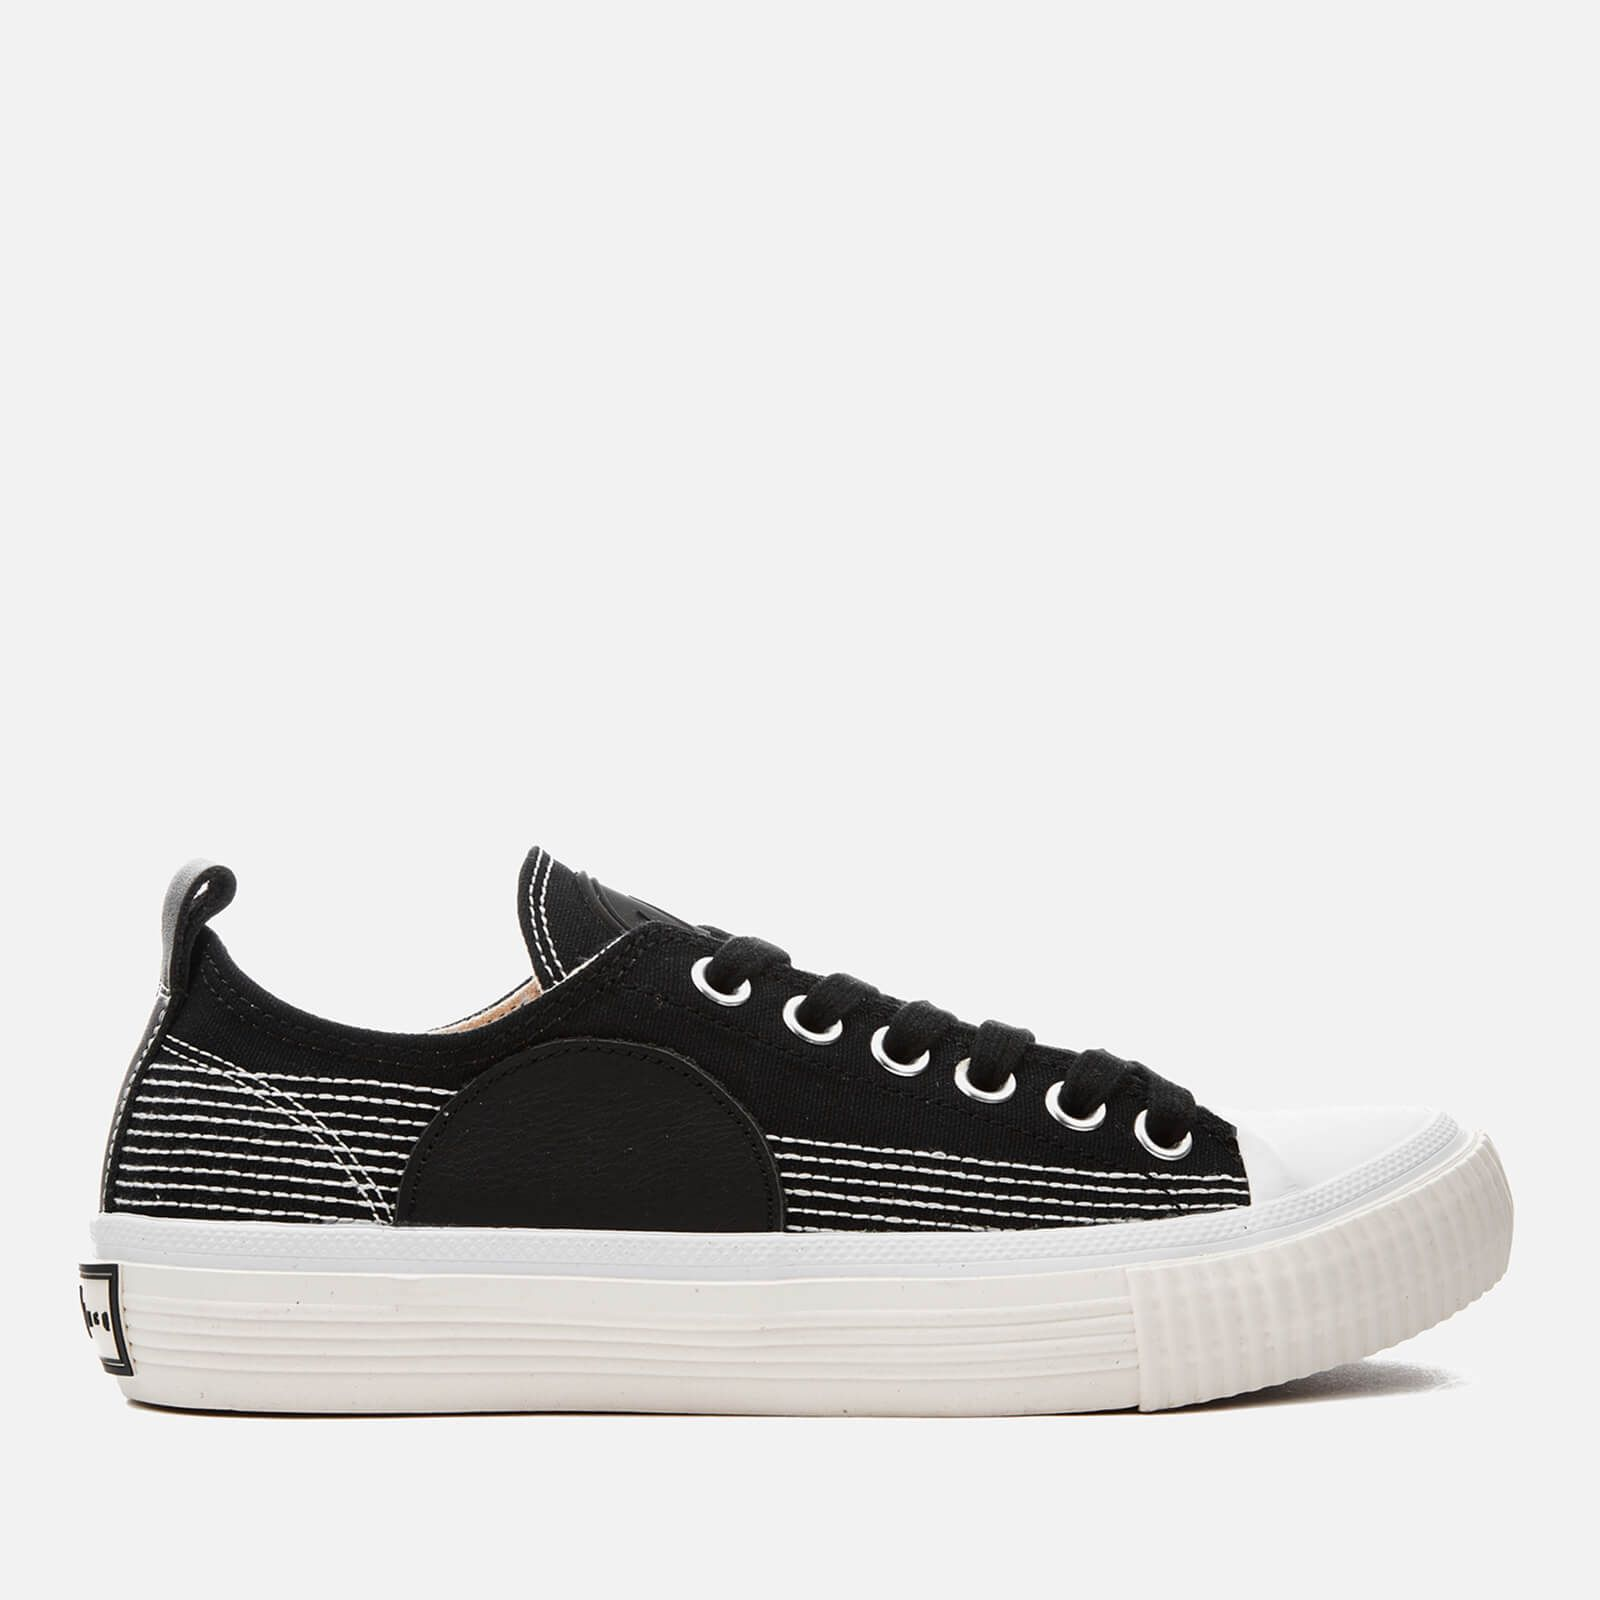 209cf93ef029 McQ Alexander McQueen Women s Canvas Low-Top Trainers - Black - Free UK  Delivery over